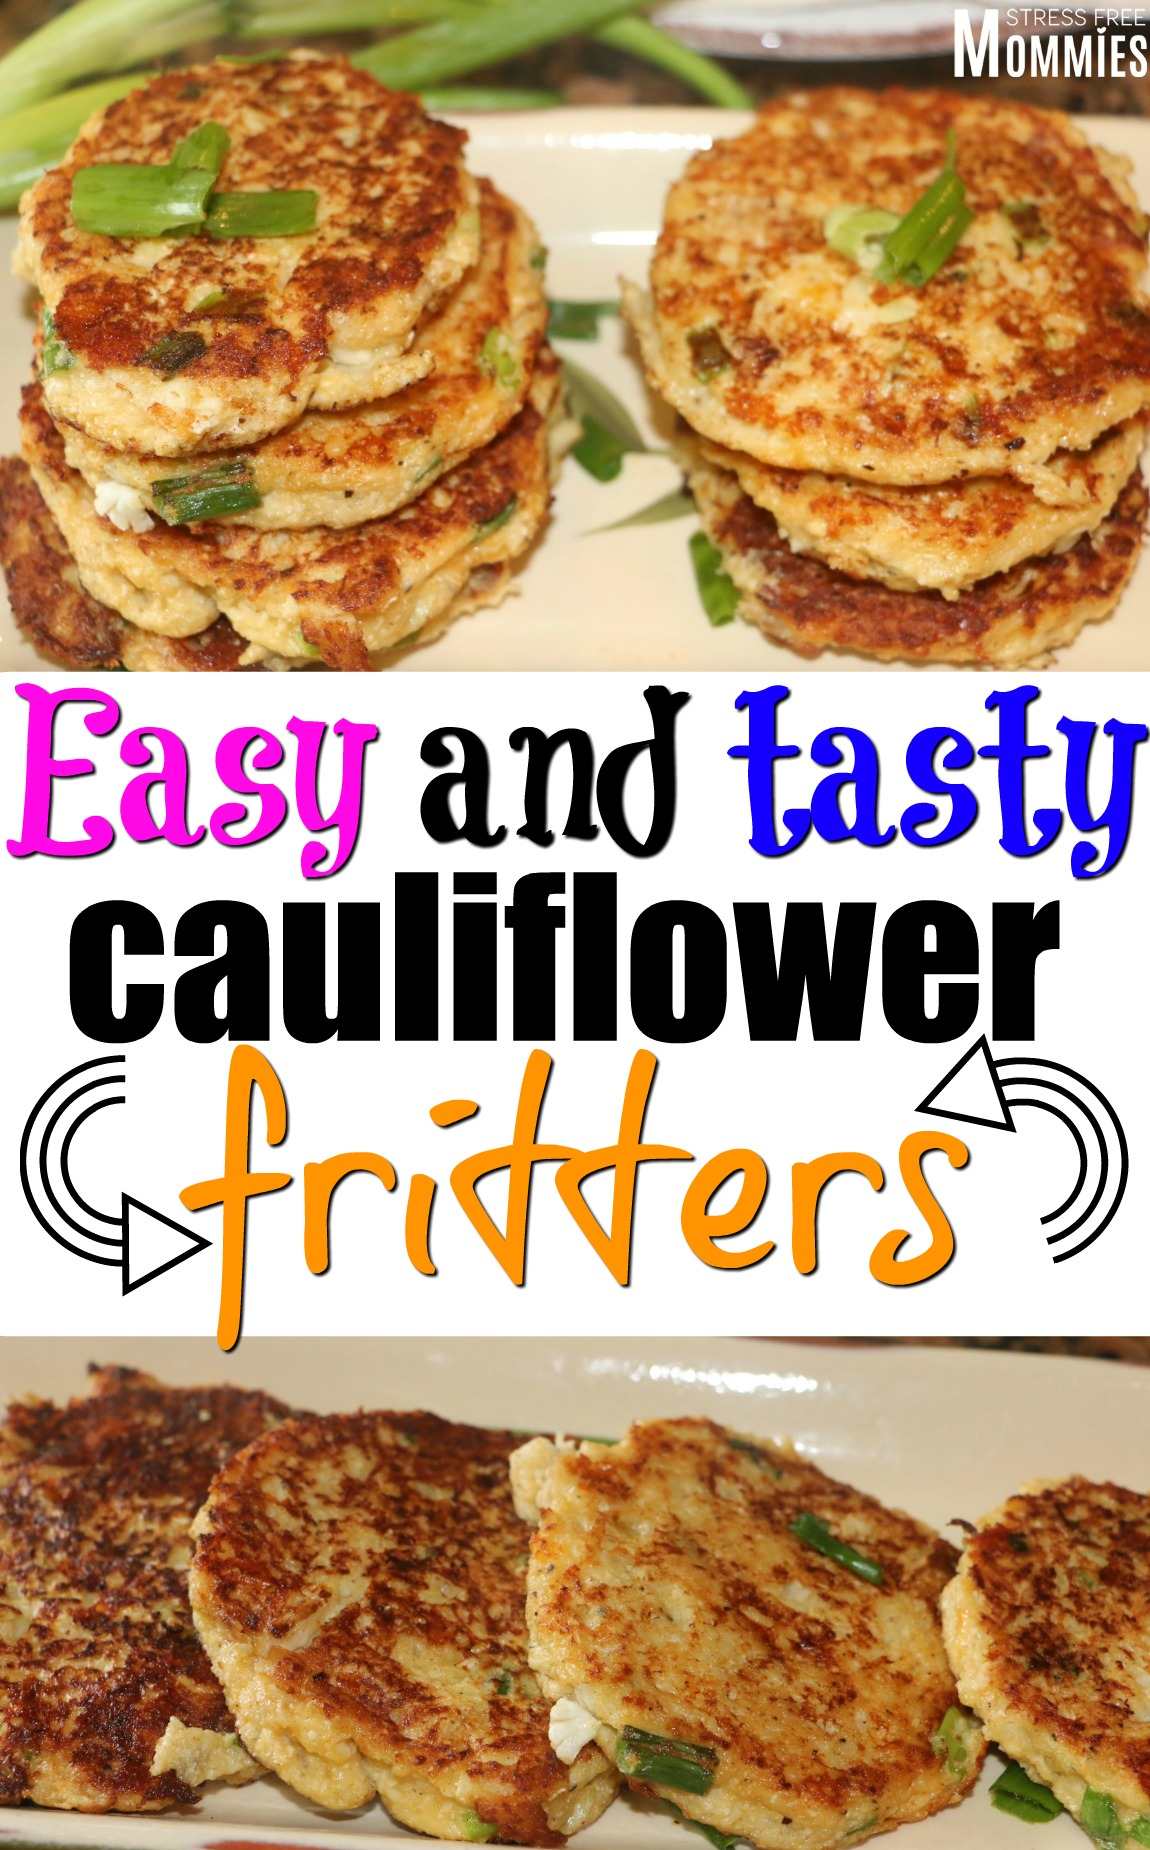 easy and tasty cauliflower fritters- Full of flavor and so easy to make. It's also kid-friendly, once you've tried them you'll want to make them again! #veggies #kidfriendly #cauliflower